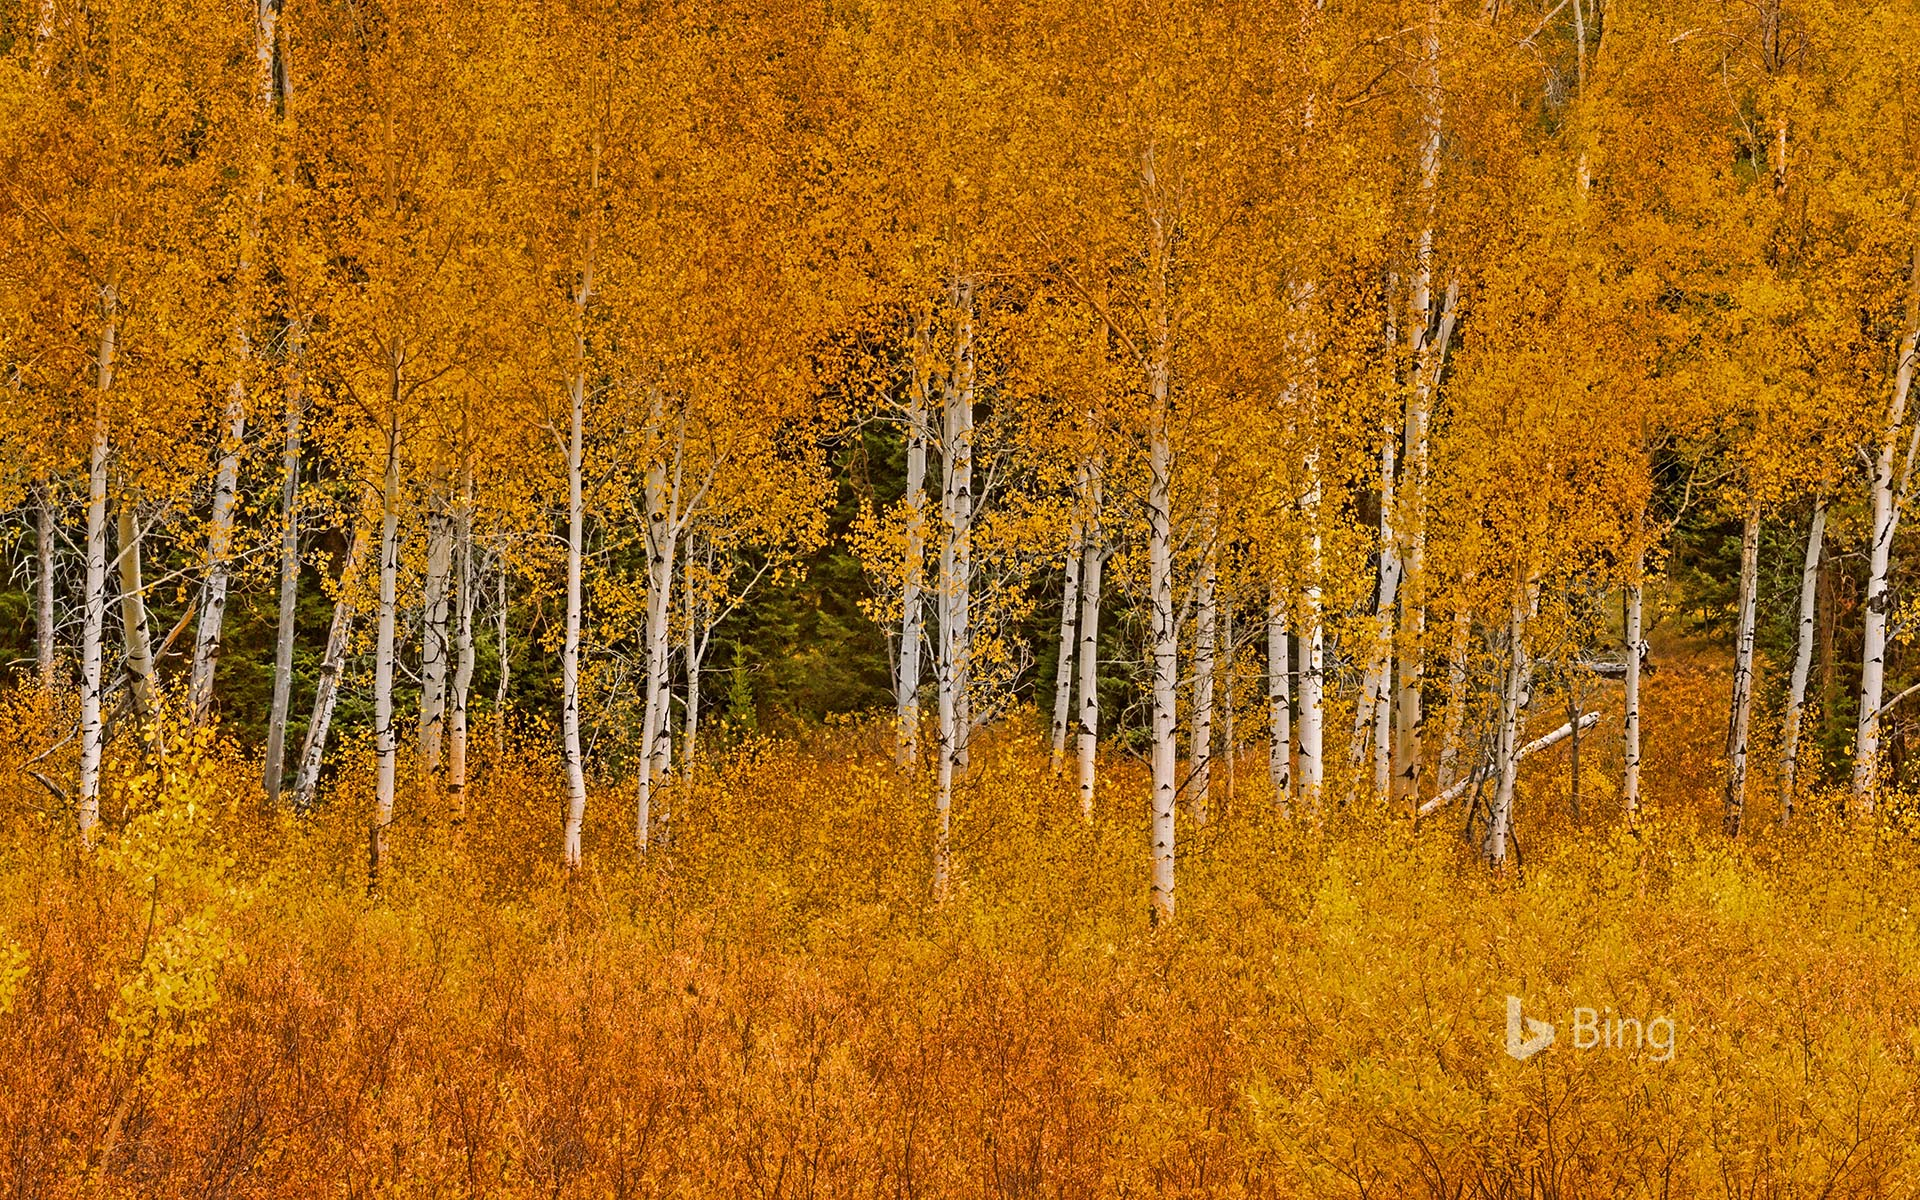 Bing Autumn Images Wallpapers 10